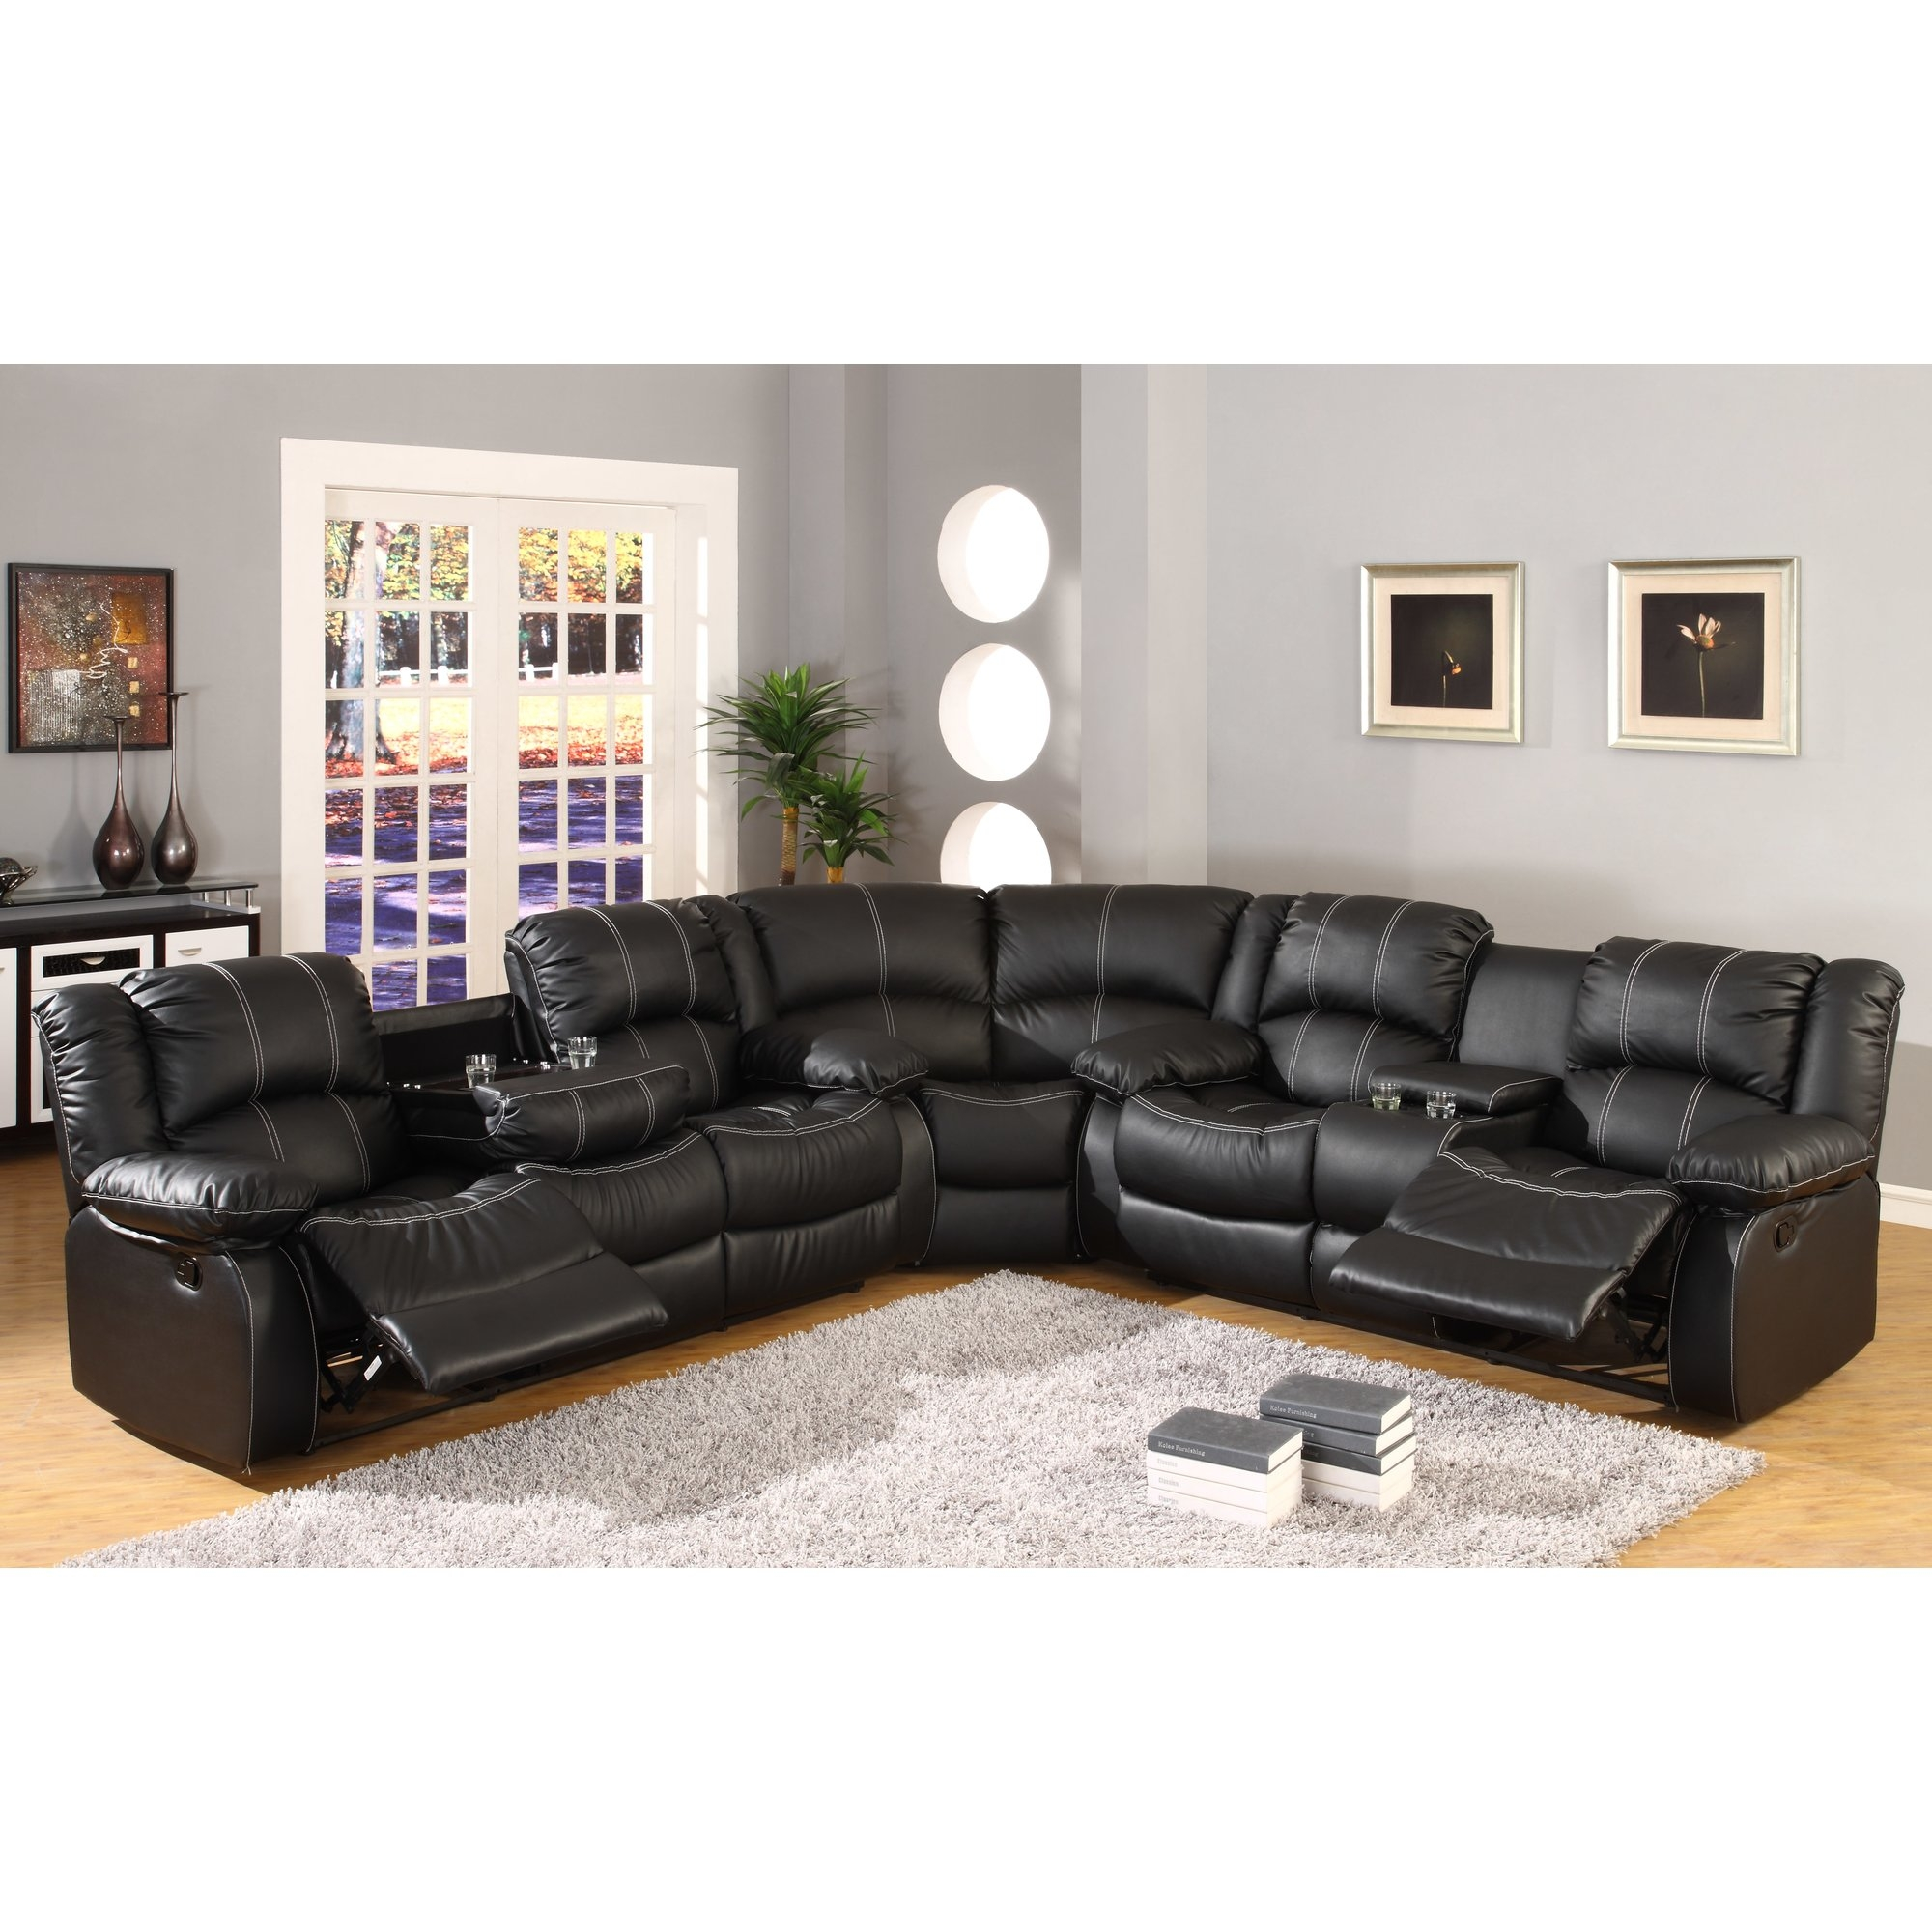 Ultimate Accents Reclining Curved Sectional Reviews Wayfair Intended For Curved Sectional Sofa With Recliner (Photo 14 of 15)